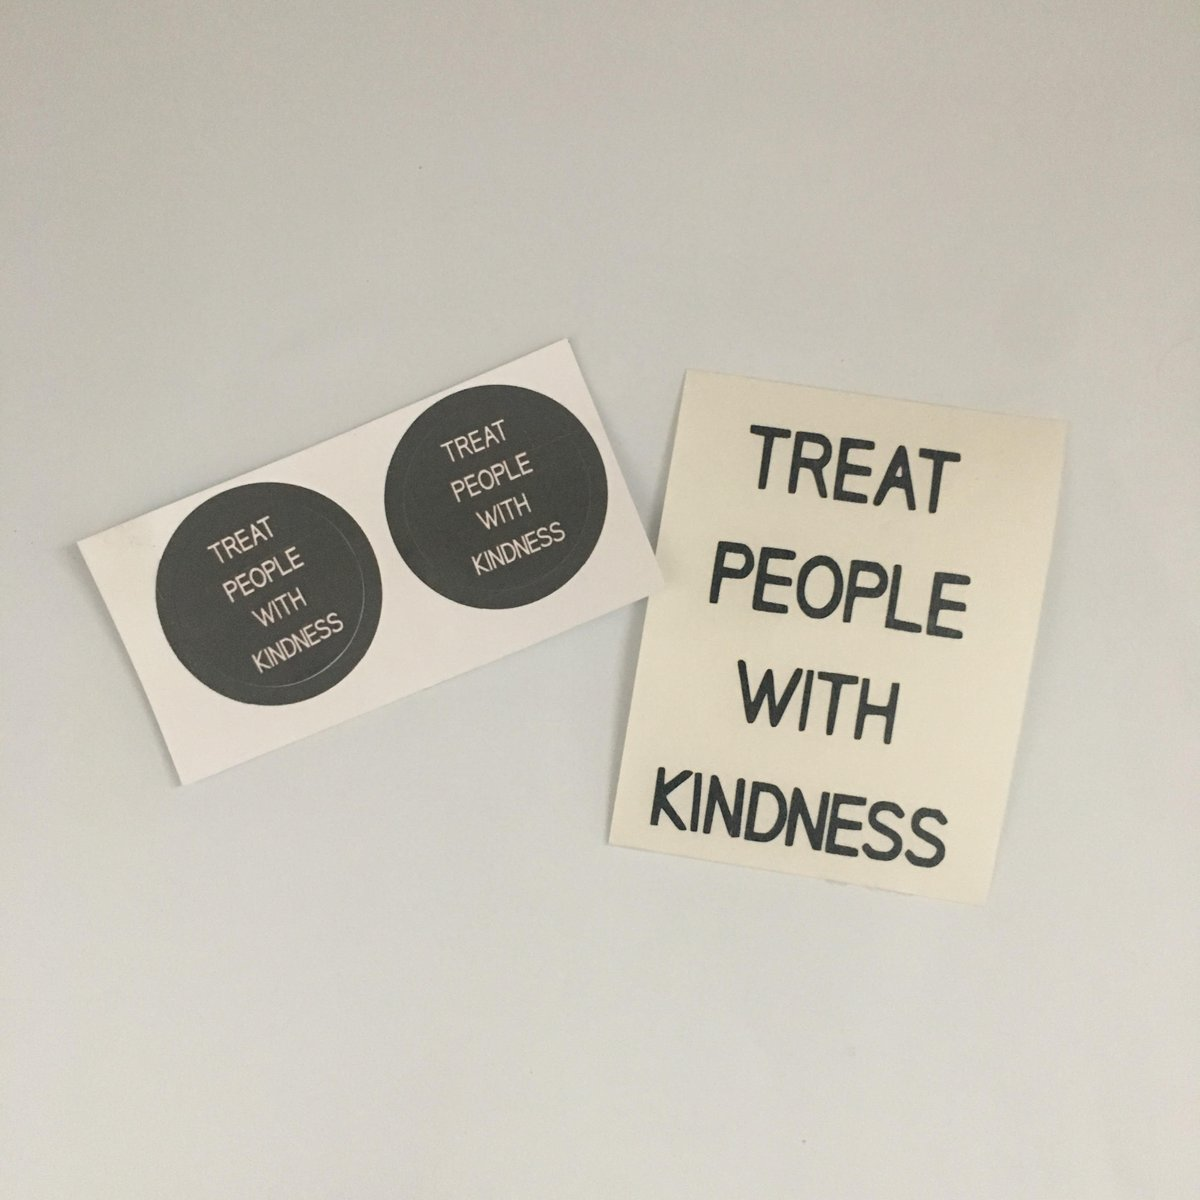 GIVEAWAY! • Treat People With Kindness Stickers  -RT to enter -Must be following -Ends in 48 hours                                      -International shipping   http:// darthstickers.com  &nbsp;  <br>http://pic.twitter.com/r67VtF6p8n